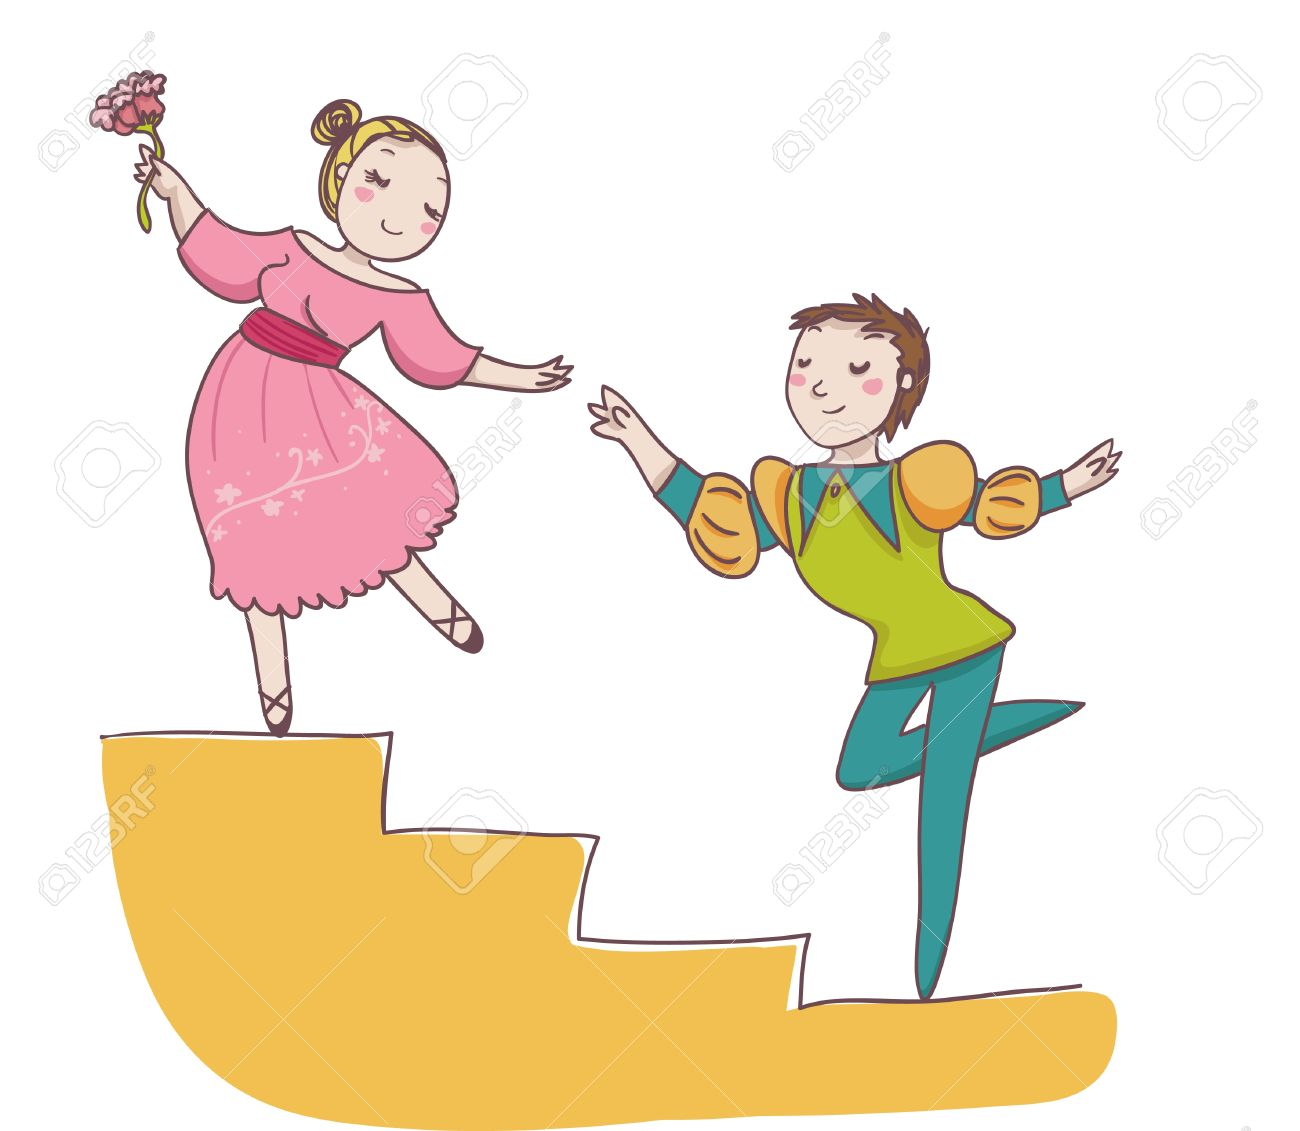 Image result for cartoon of romeo and juliet